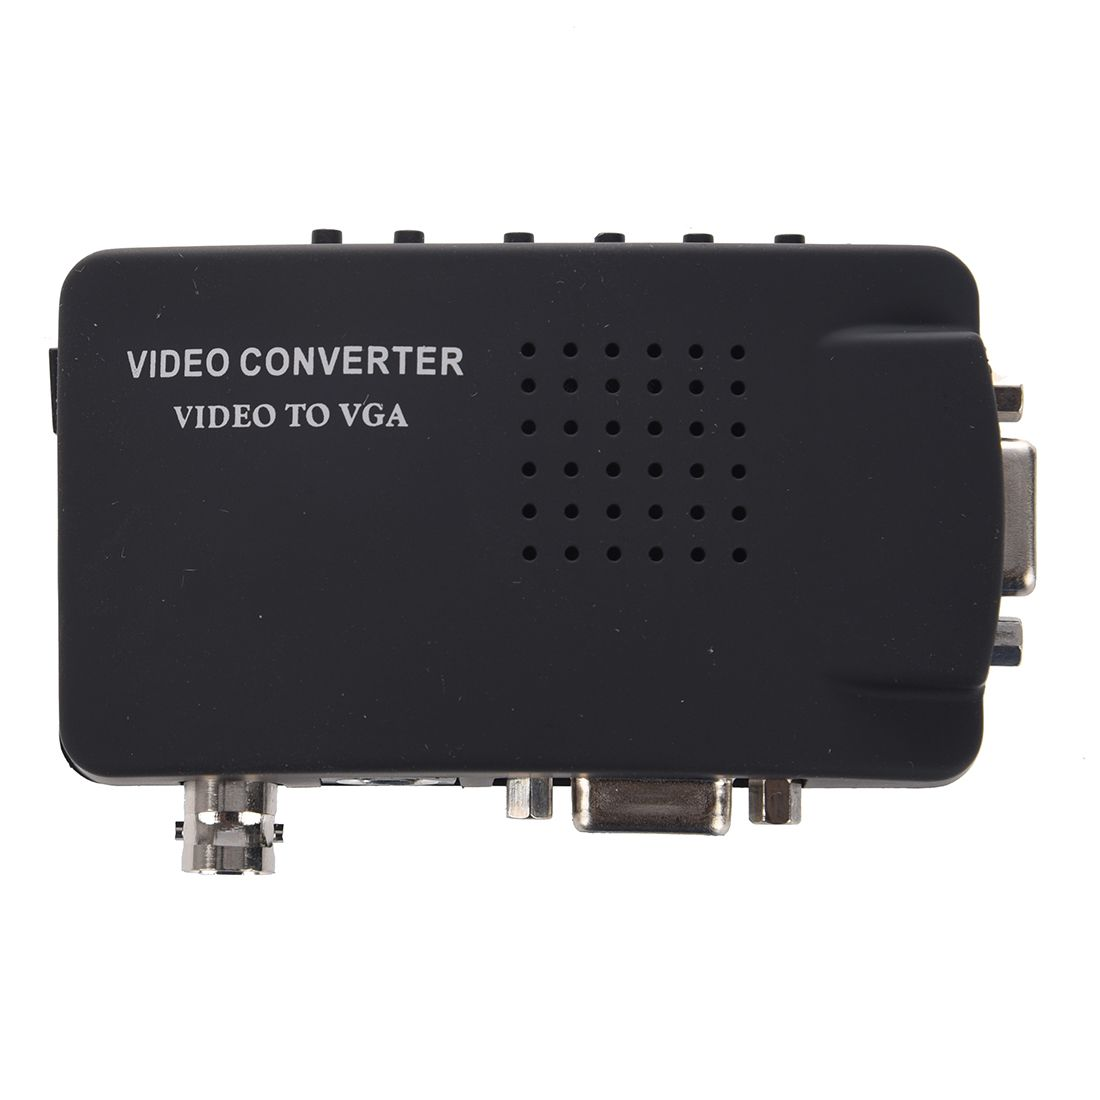 Bnc S Video Vga Cctv Camera Dvd Dvr To Converter 800600 1920 Lock Wiring Diagram Along With Security Cable Connectors